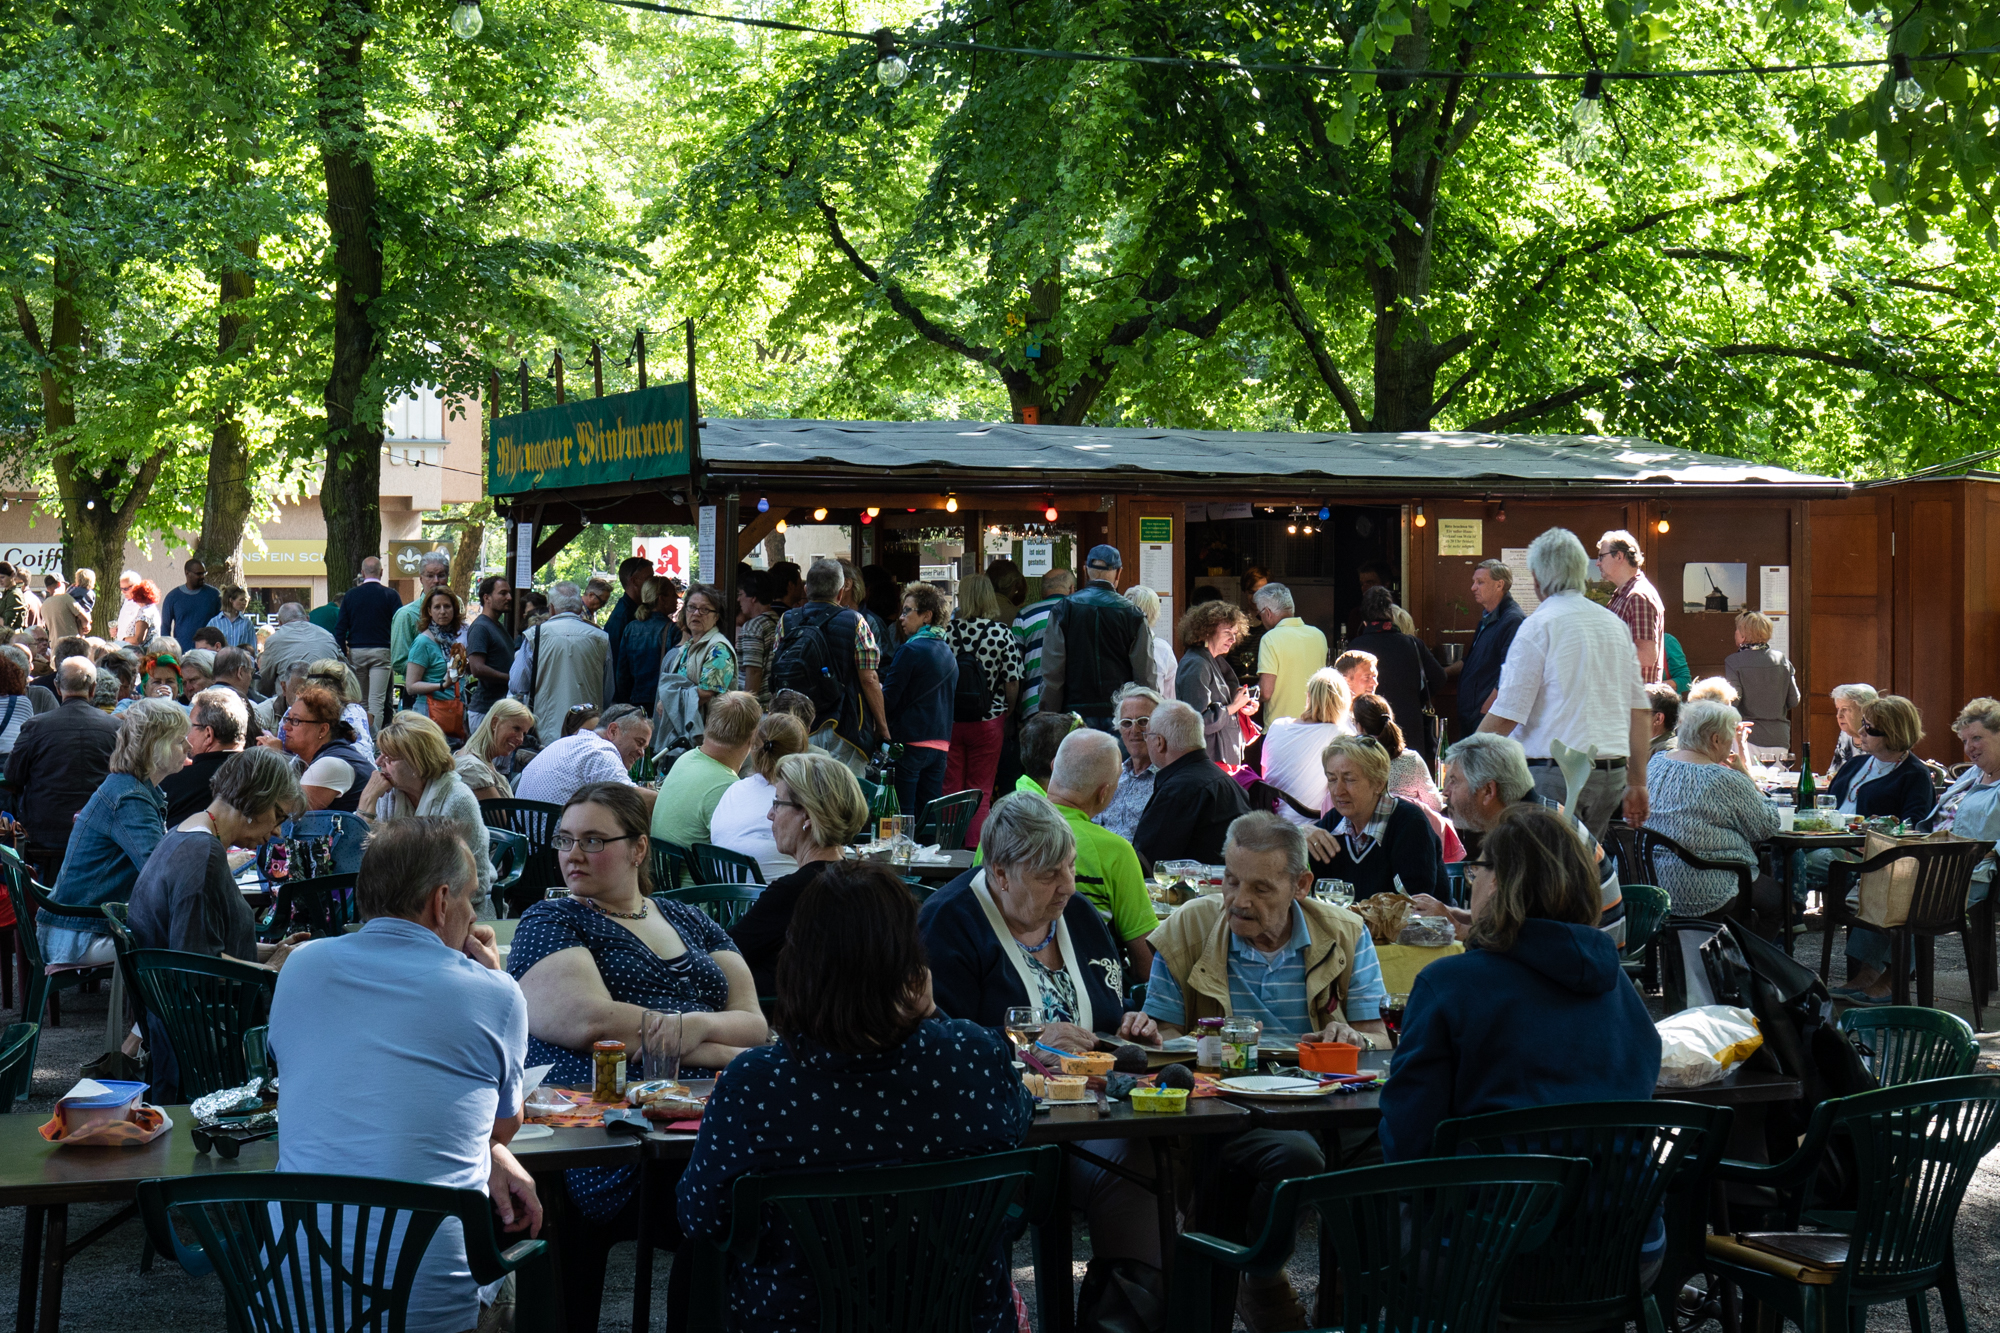 Guests enjoying their drinks at the Rheingauer Weinbrunnen - a wooden hut serving wines from Rheingau-Taunus district of Hesse on the Rüdesheimer Platz in Berlin Wilmersdorf